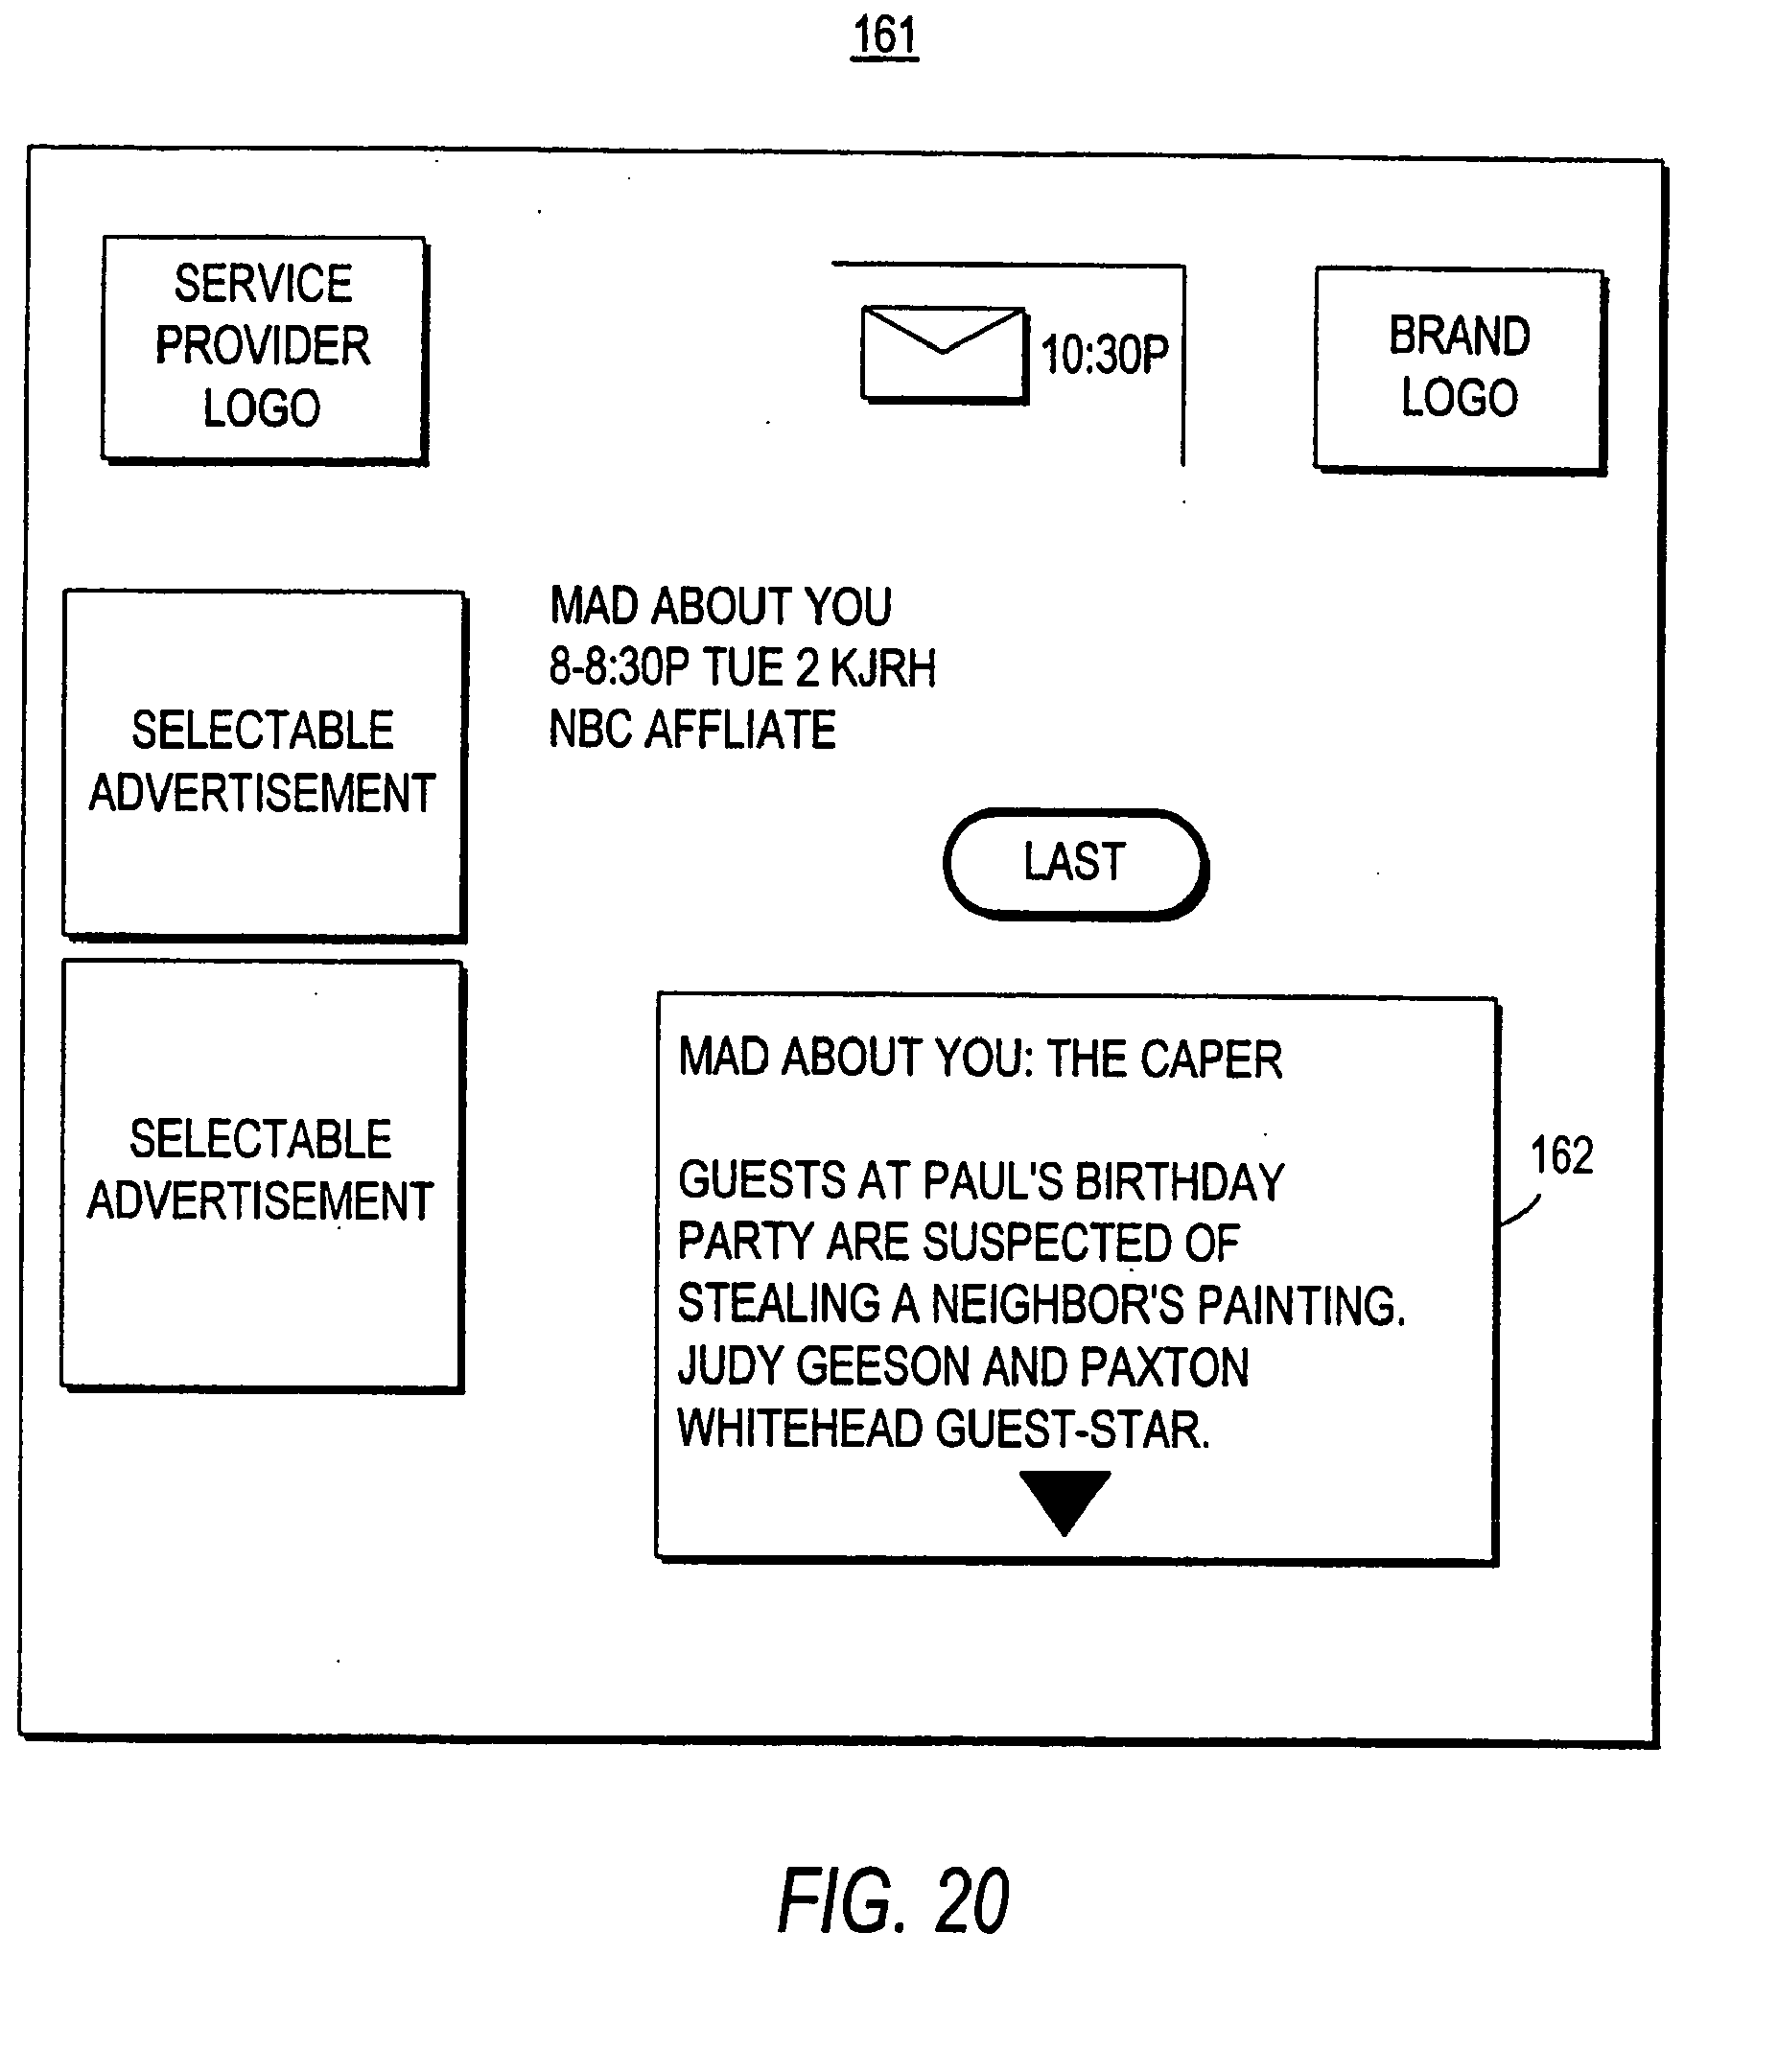 EP1662792A2 - Client-server based interactive television progrm